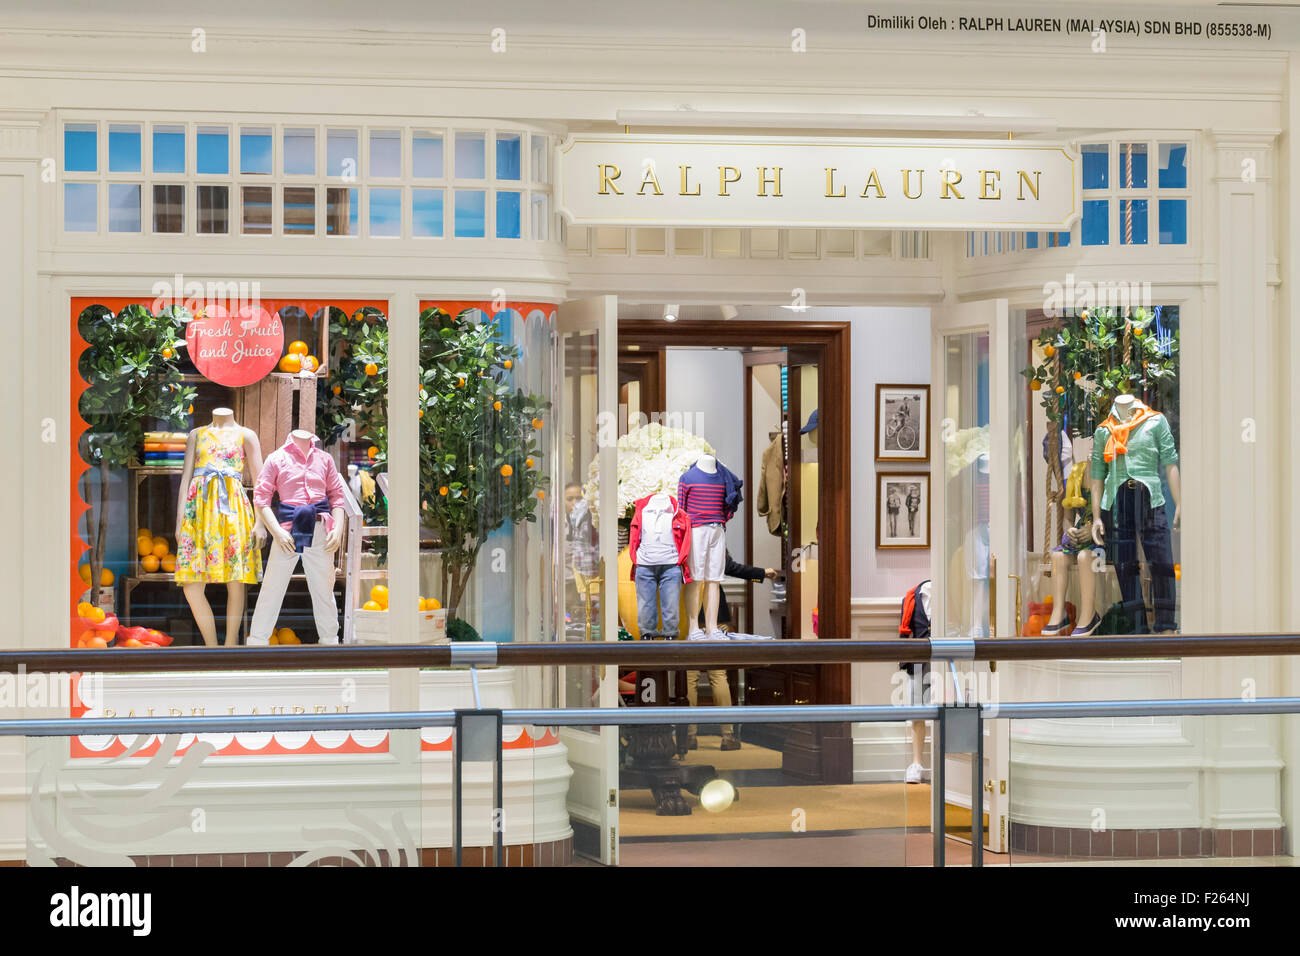 Ralph Lauren shop - Stock Image